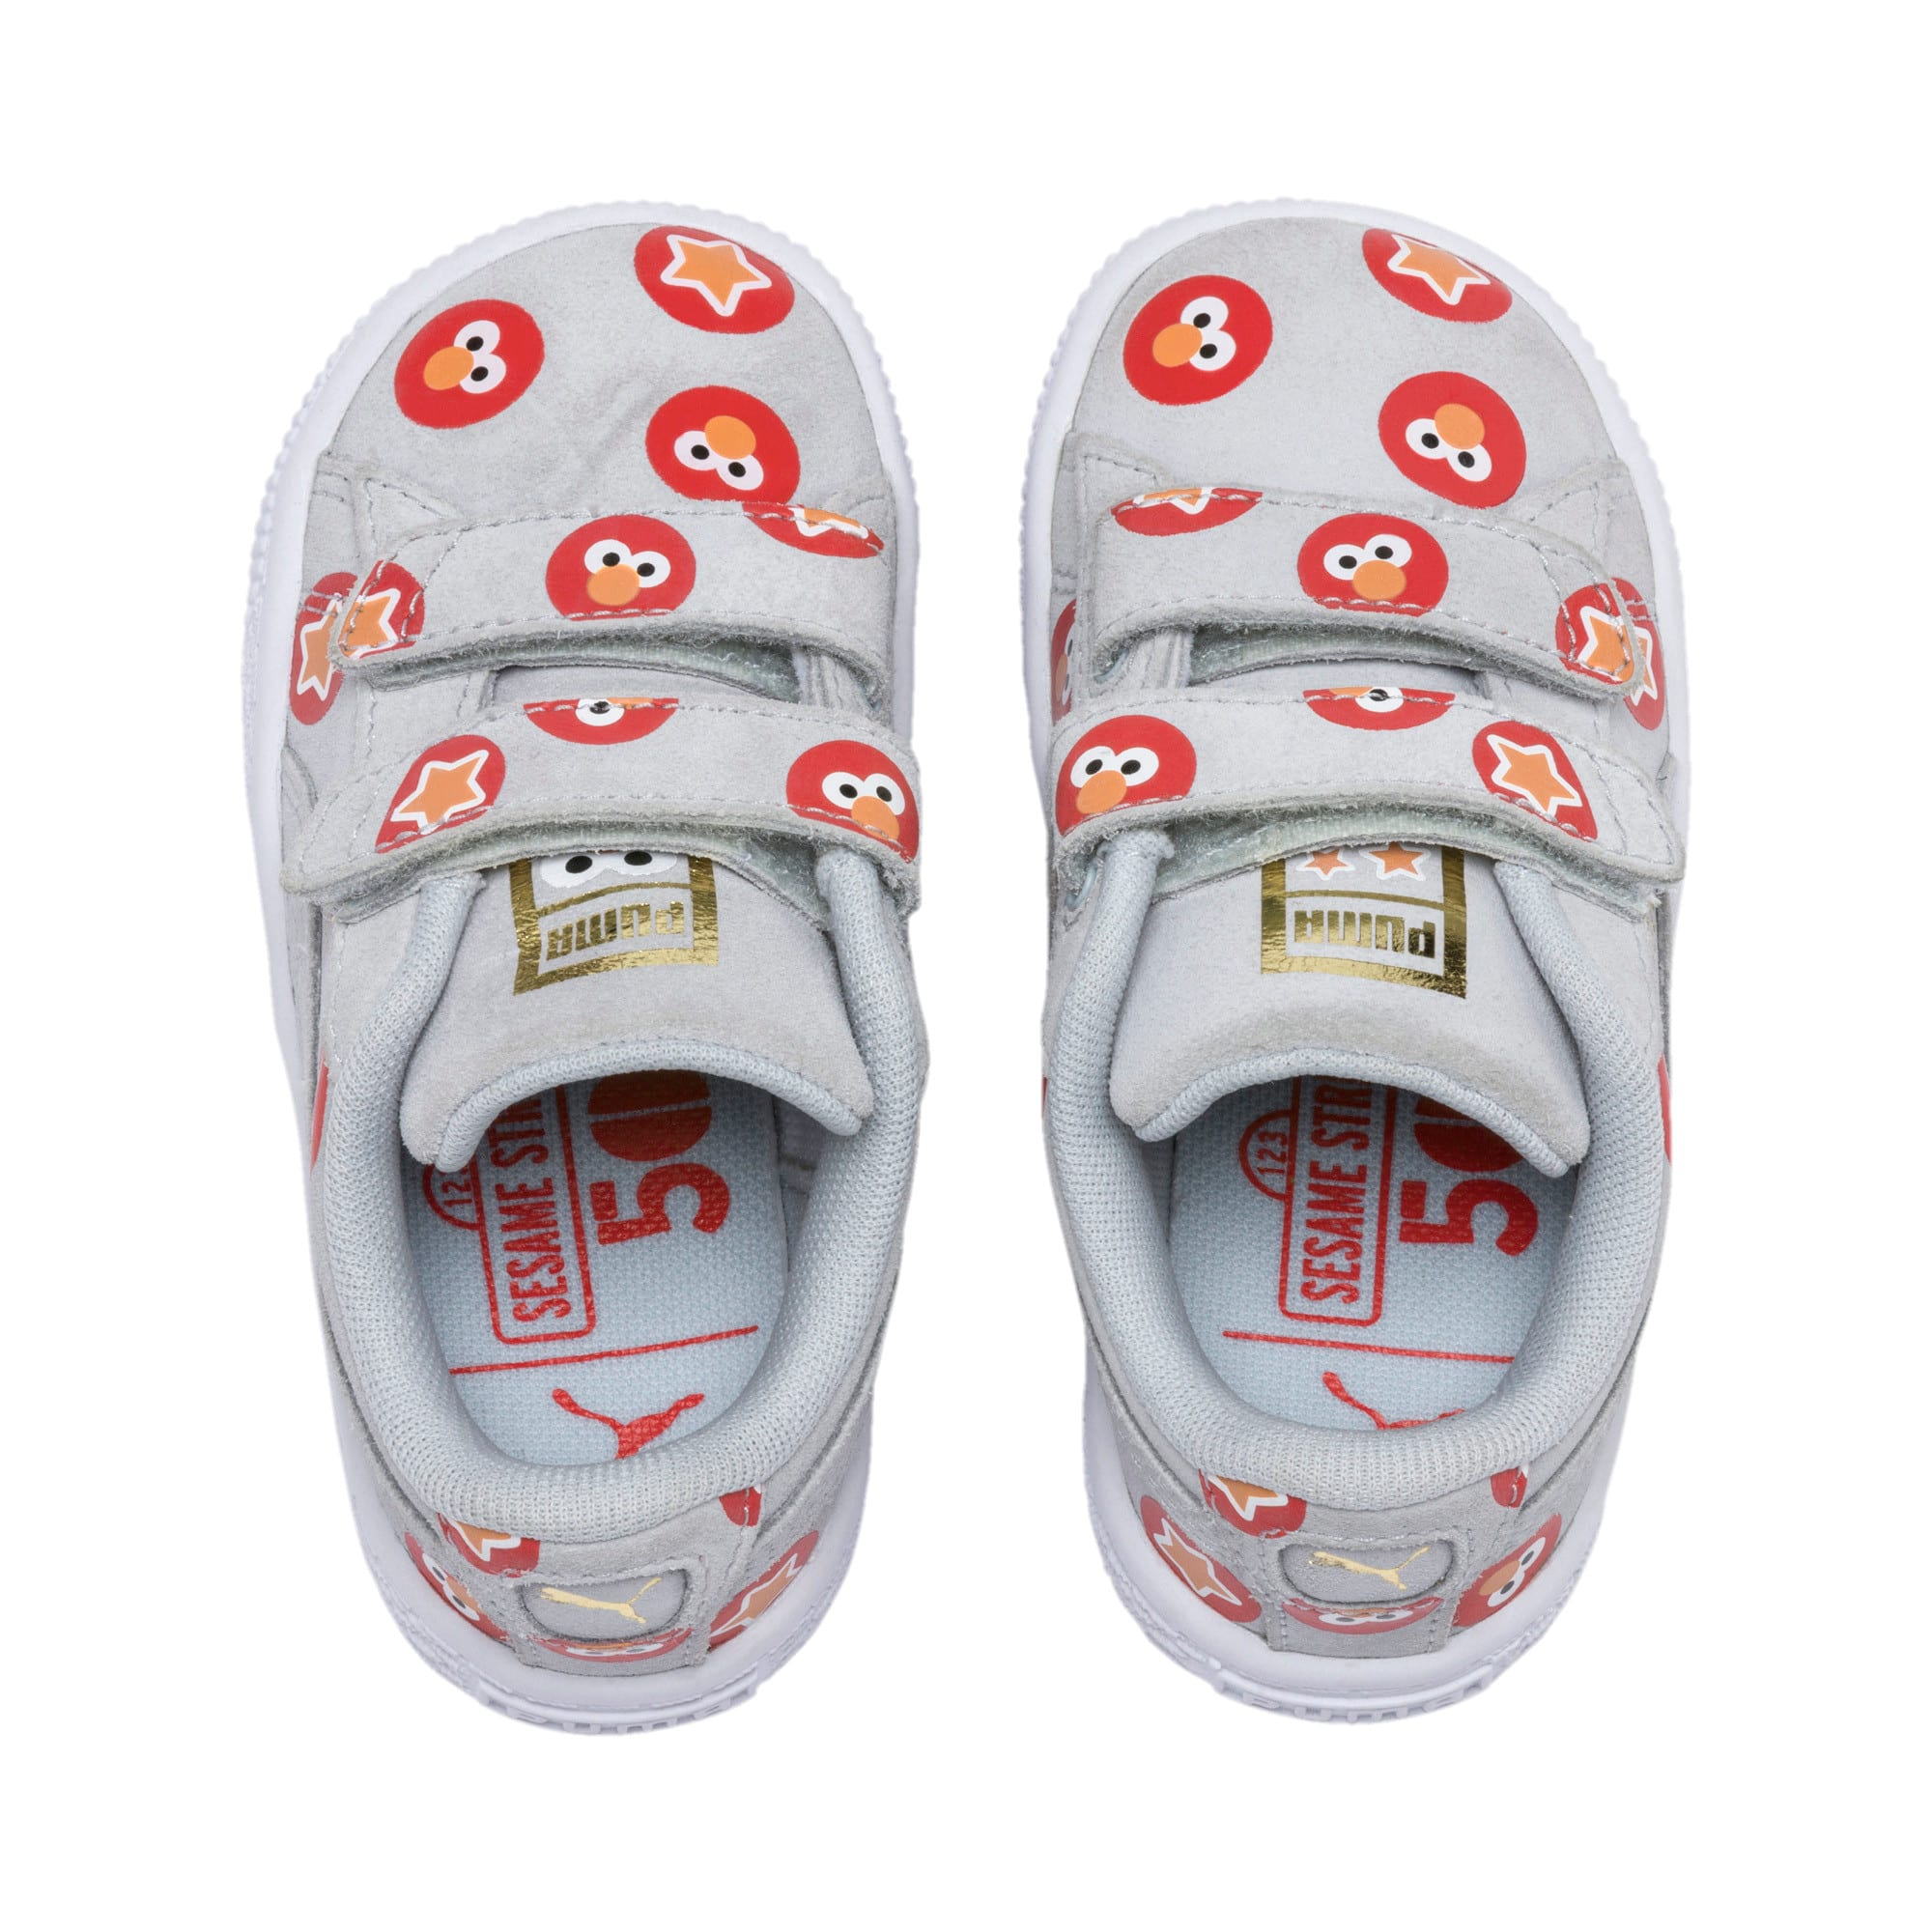 Thumbnail 6 of PUMA x SESAME STREET 50 Suede Badge Toddler Shoes, Grey Dawn-High Risk Red, medium